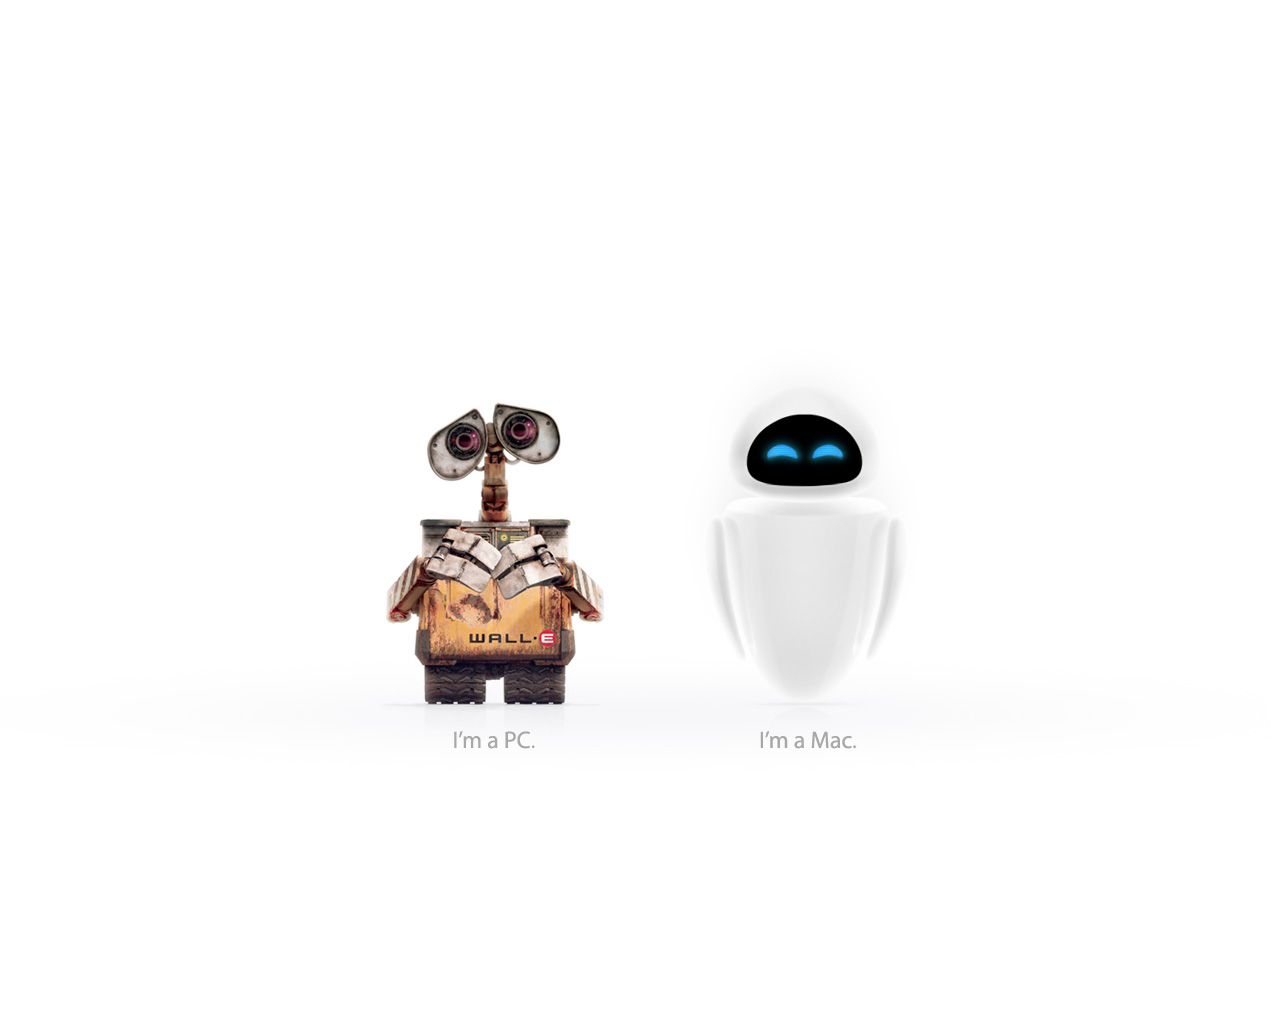 Wall-E and Eve